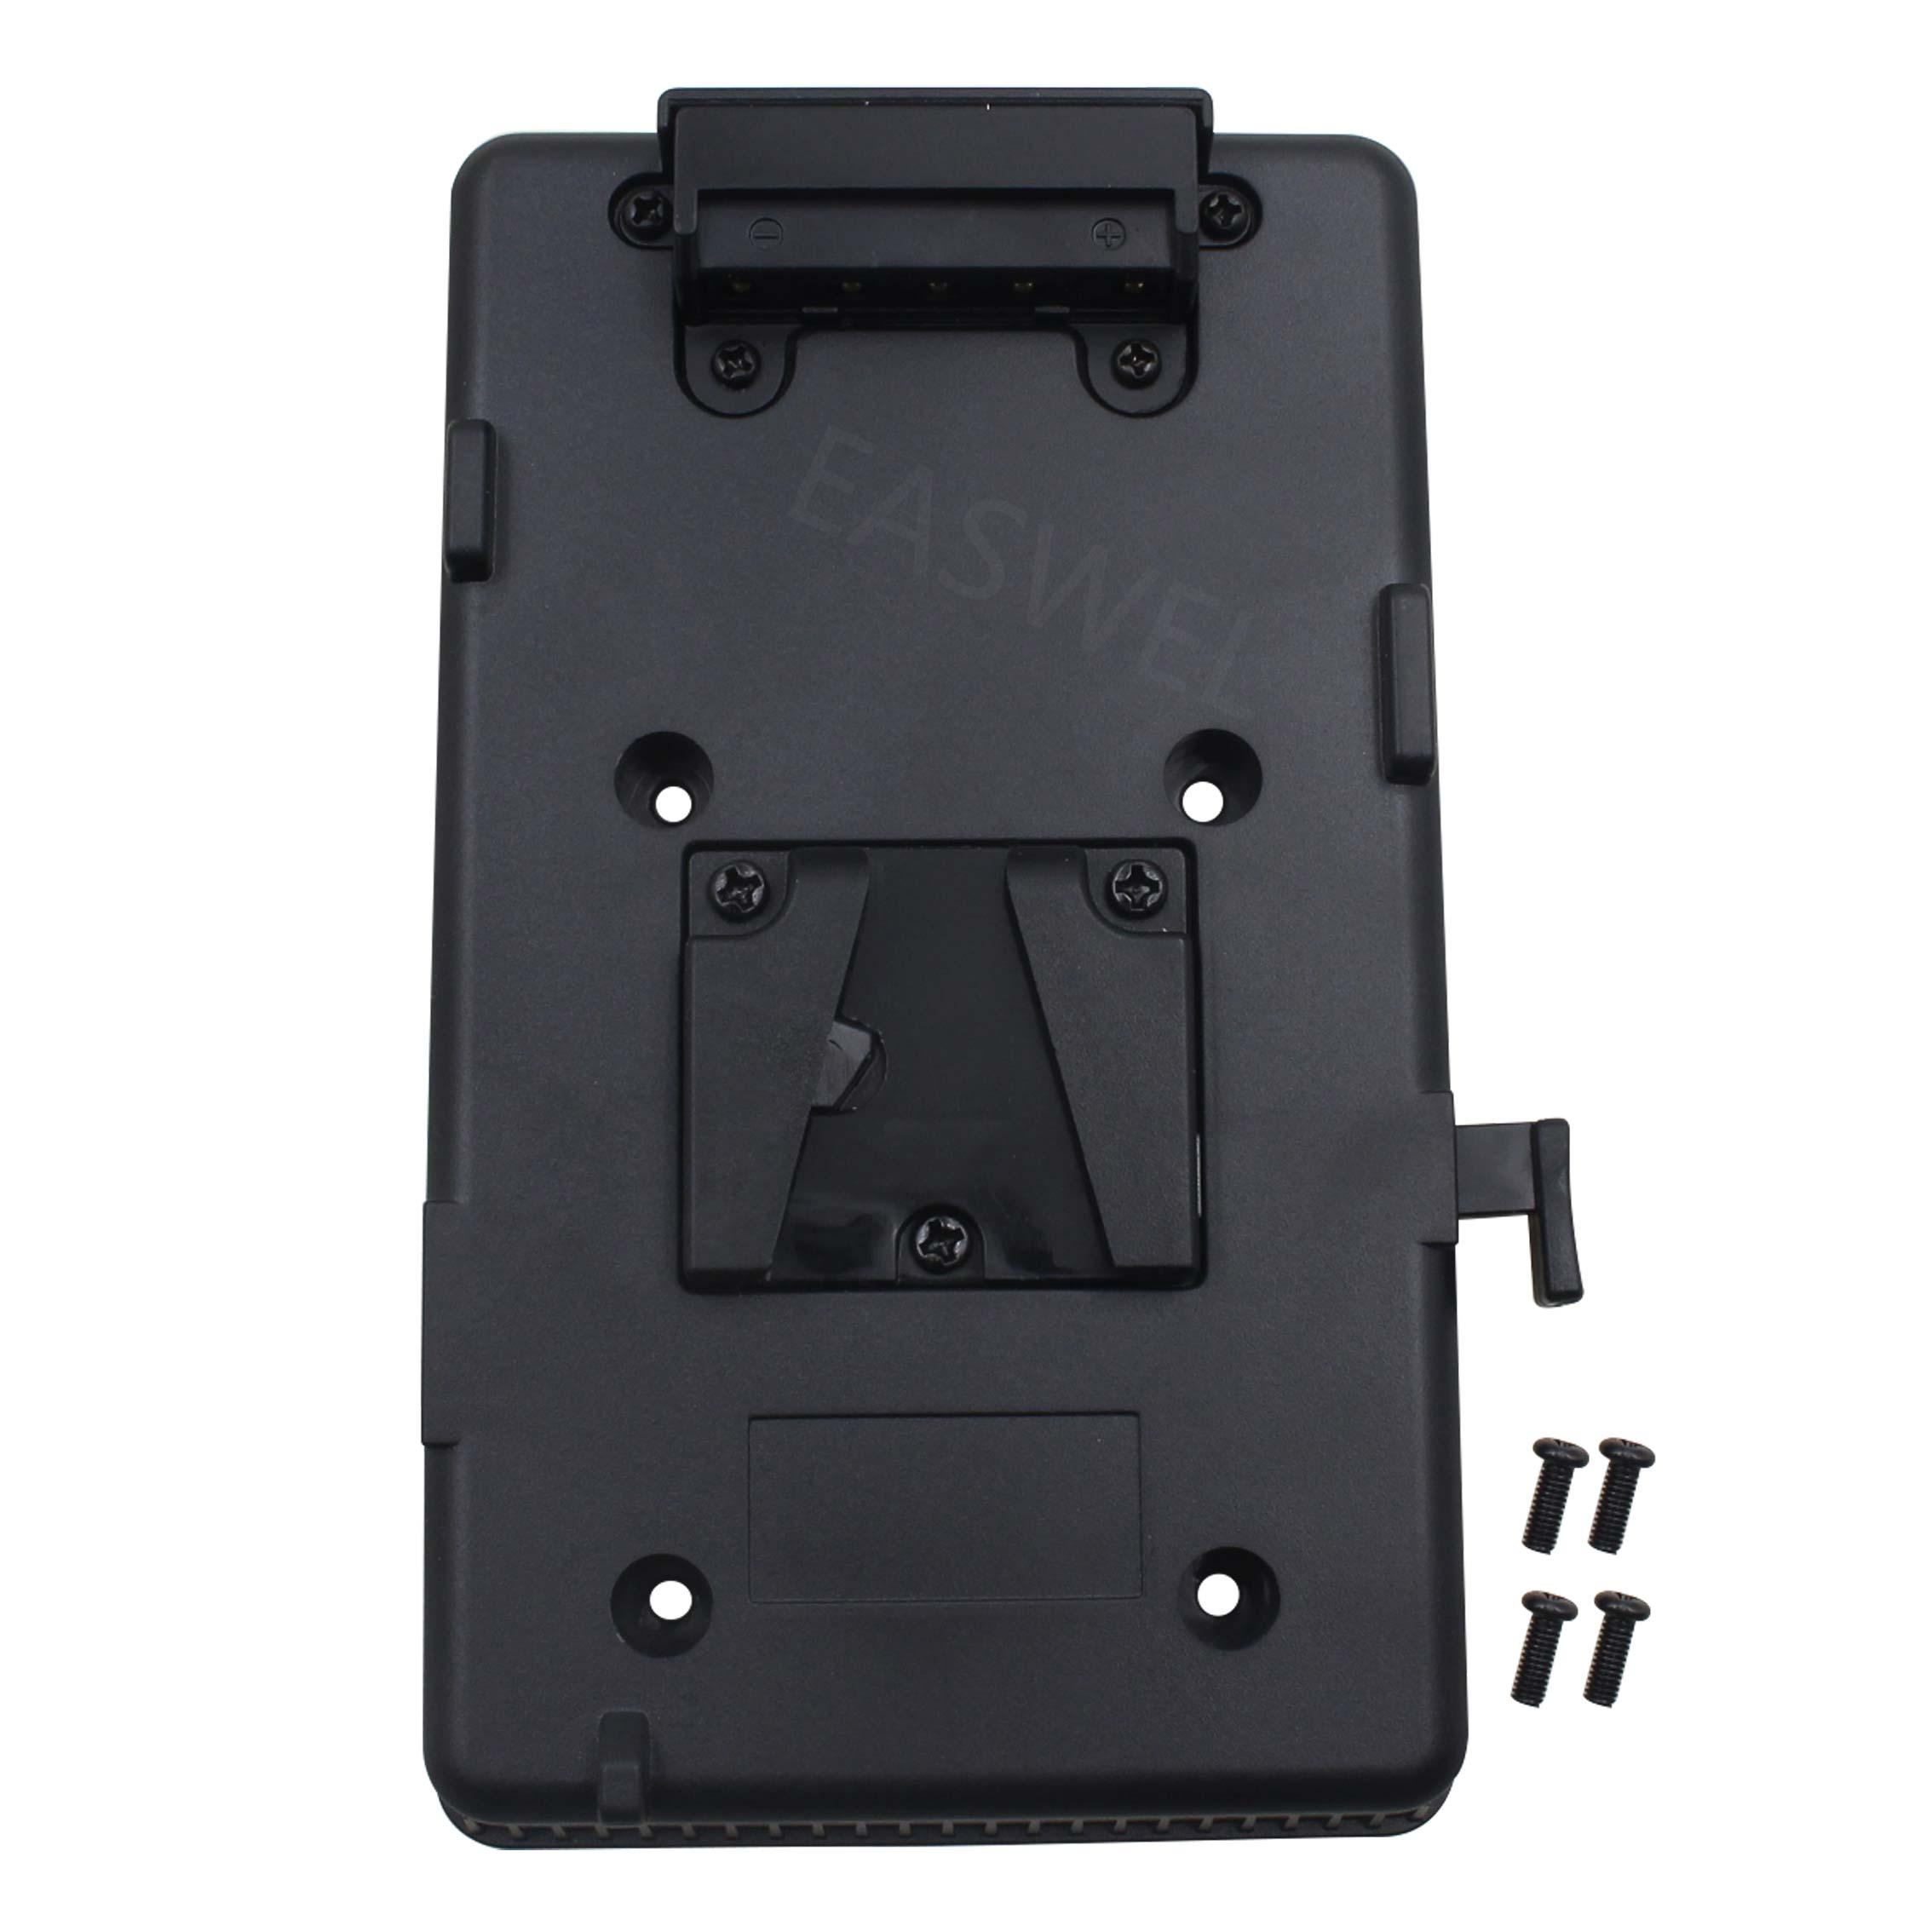 V mount V-lock D-Tap BP Battery Plate Adapter for Sony DSLR DV SLR Video Camera